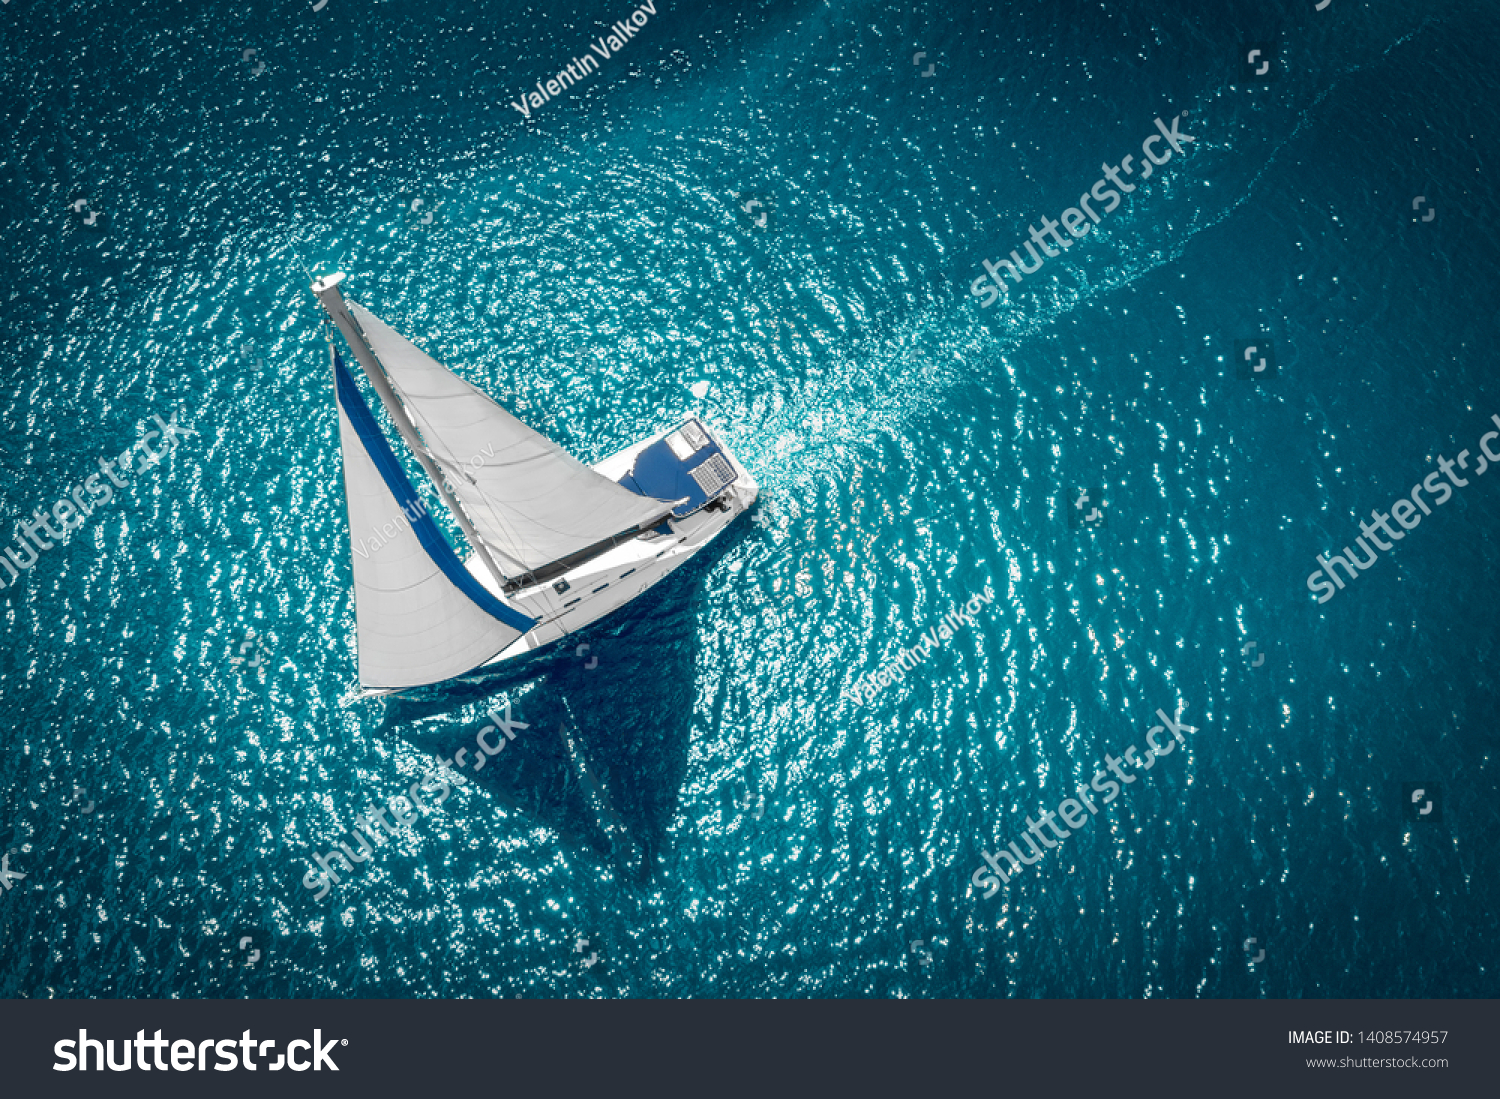 Regatta sailing ship yachts with white sails at opened sea. Aerial view of sailboat in windy condition. #1408574957